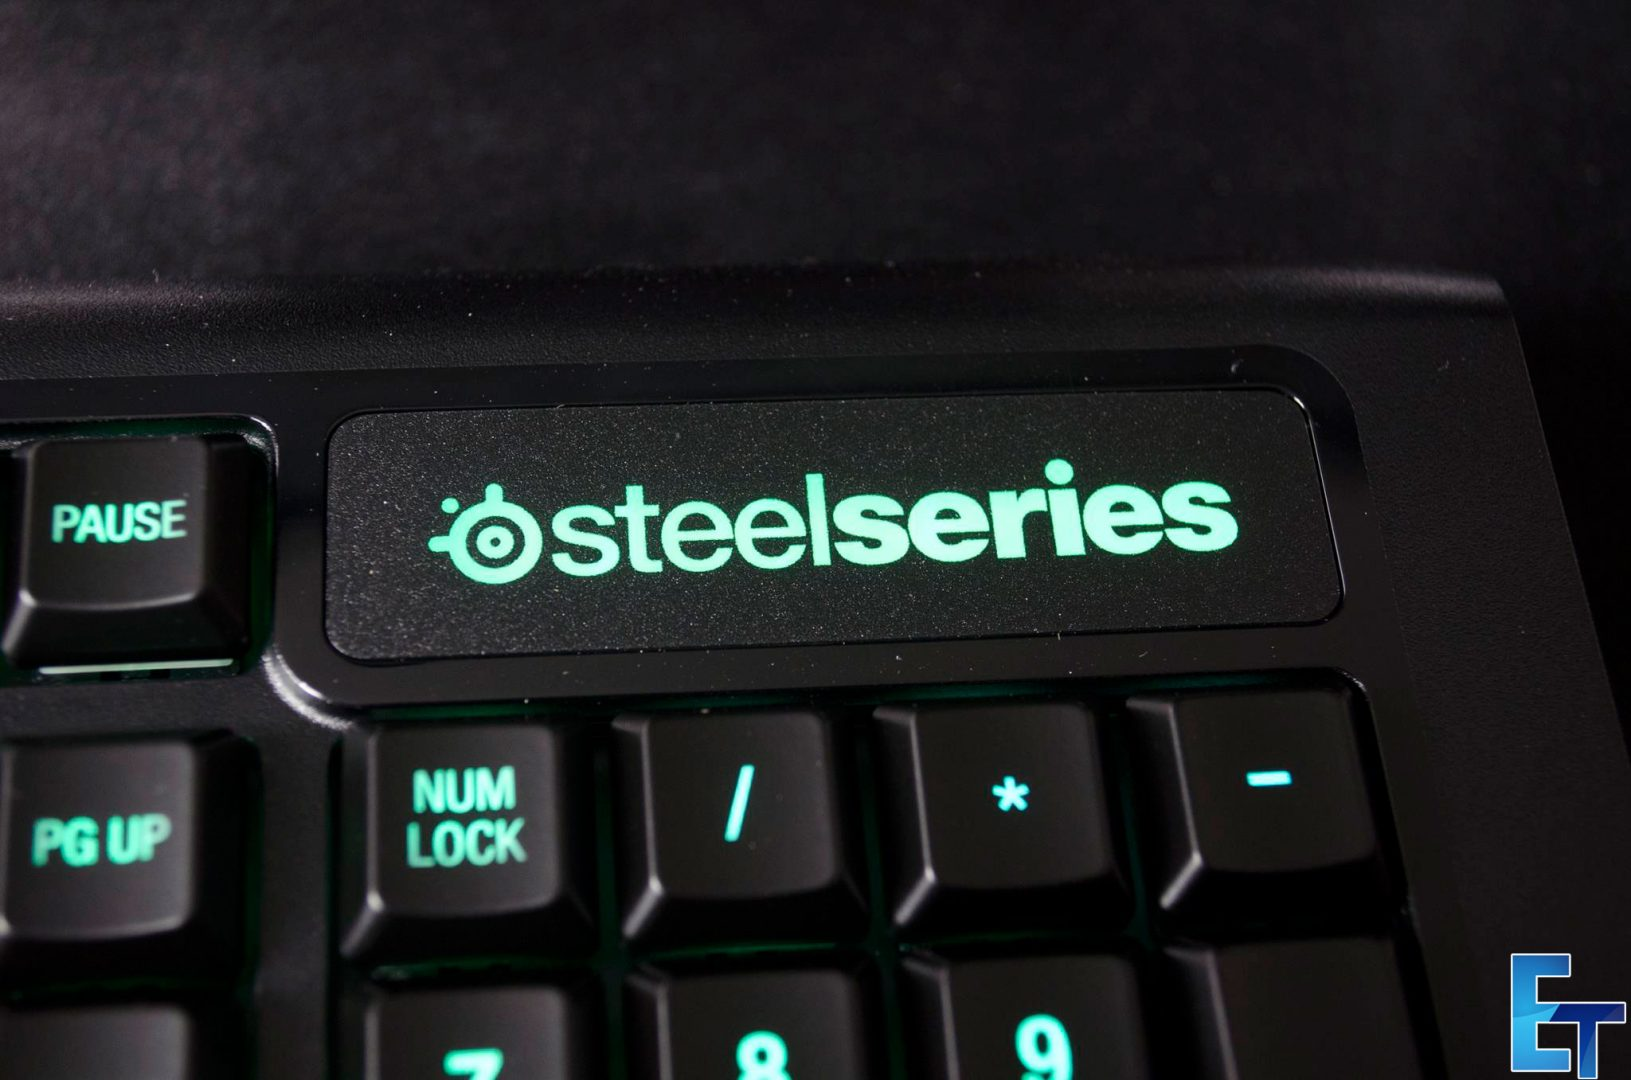 sTEELsERIES-aPEX-m800-mECHANICAL-gAMING-KEYBOARD-rEVIEW_5